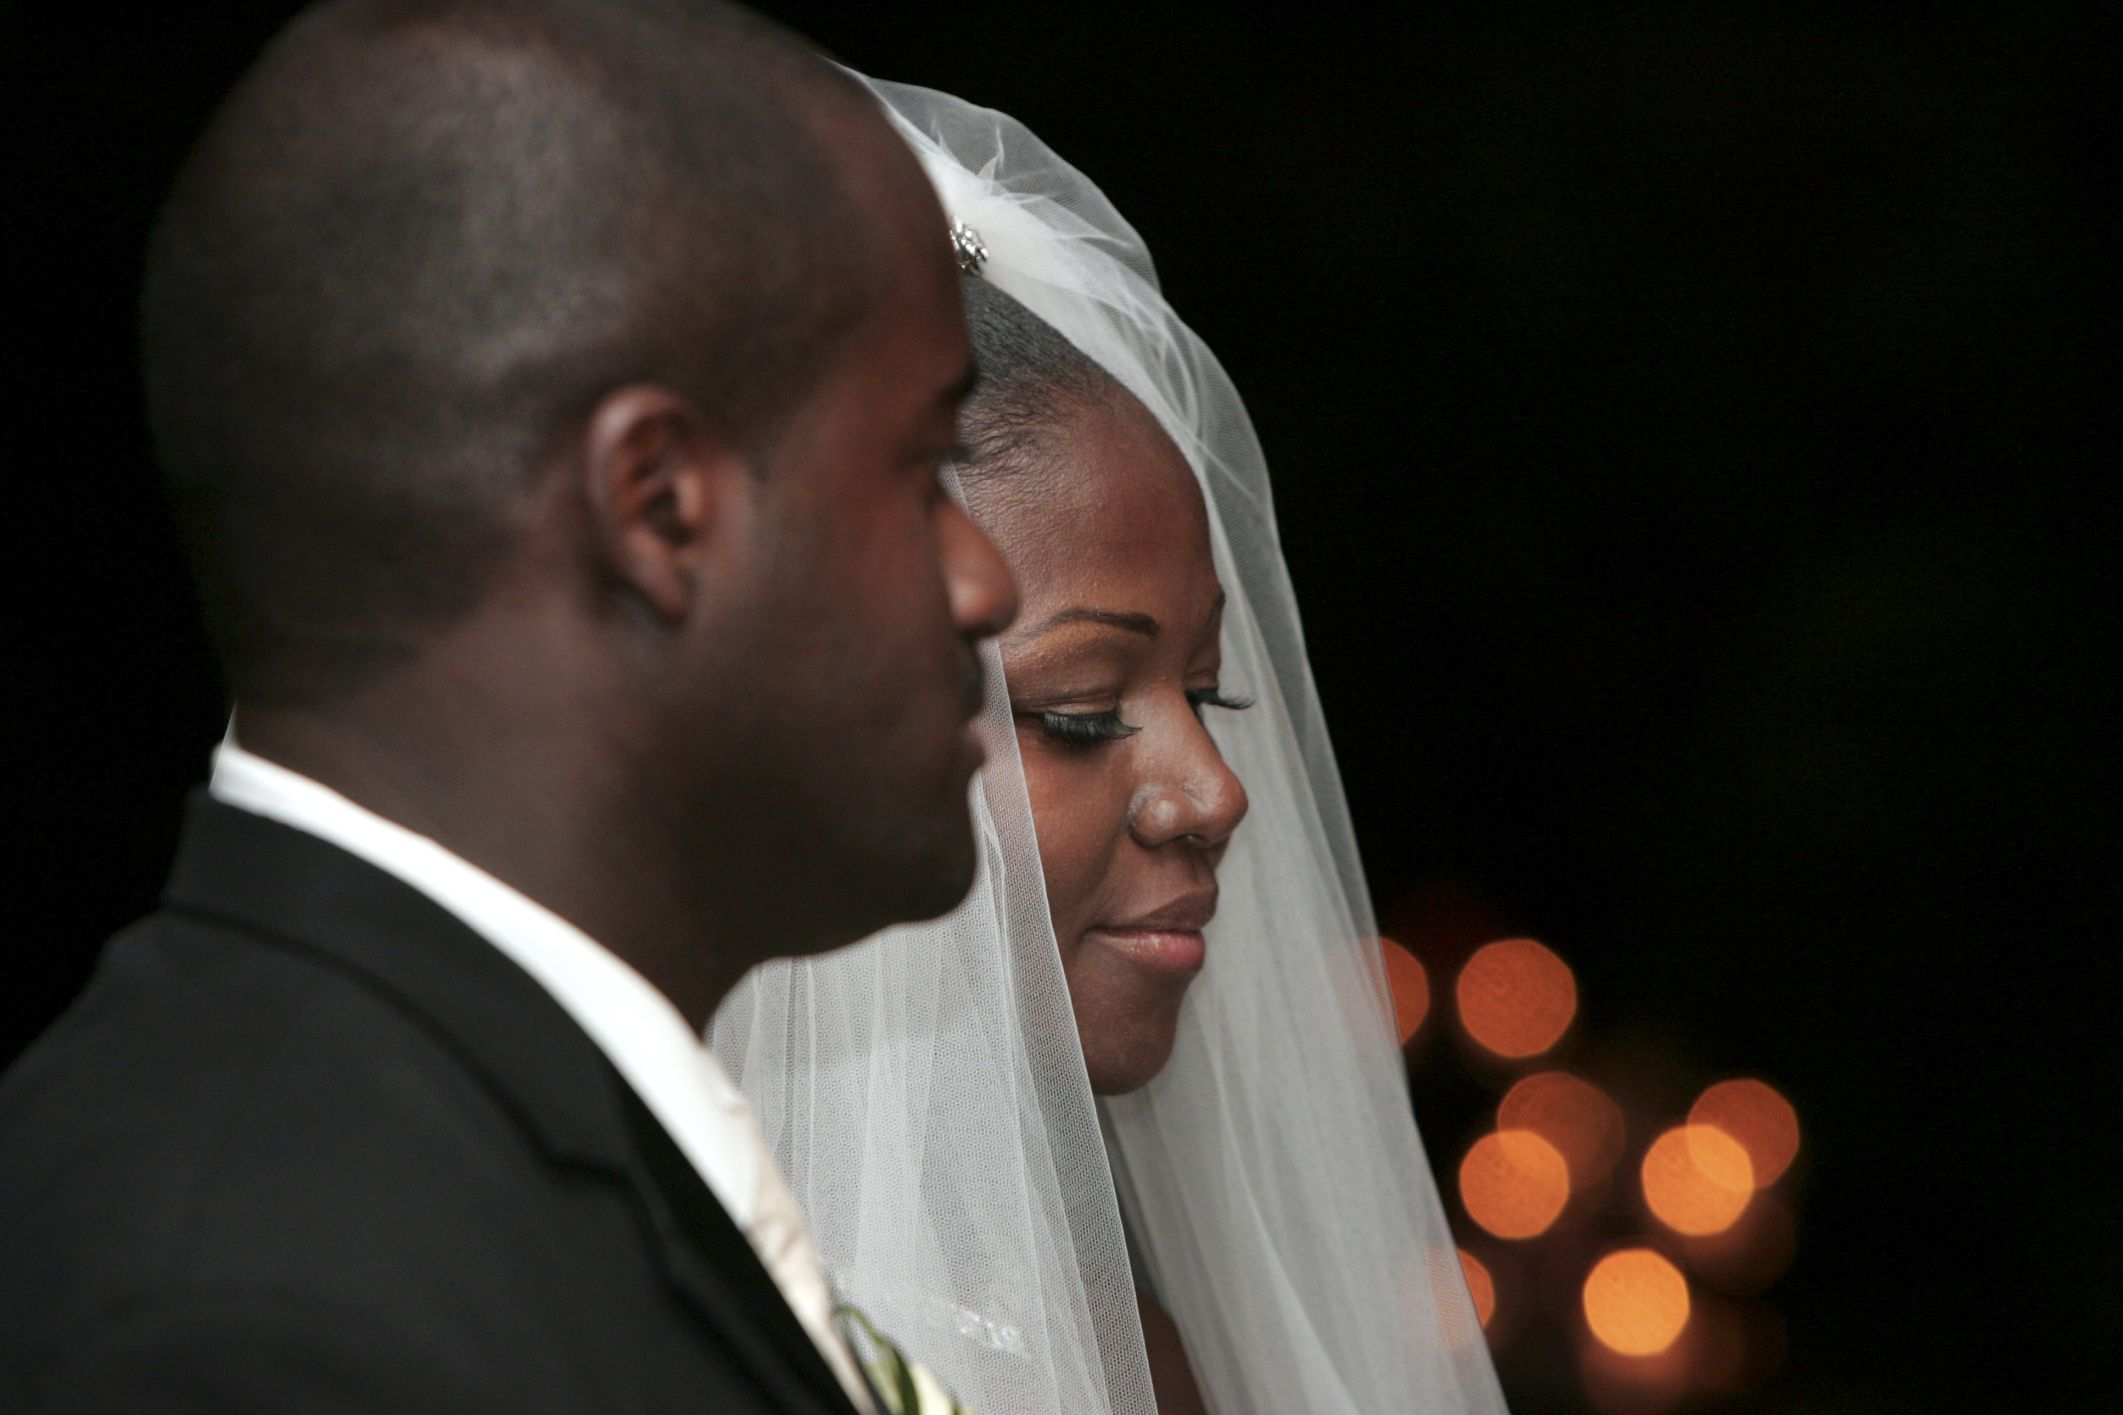 Wedding Blessings Photography: African Wedding Blessings